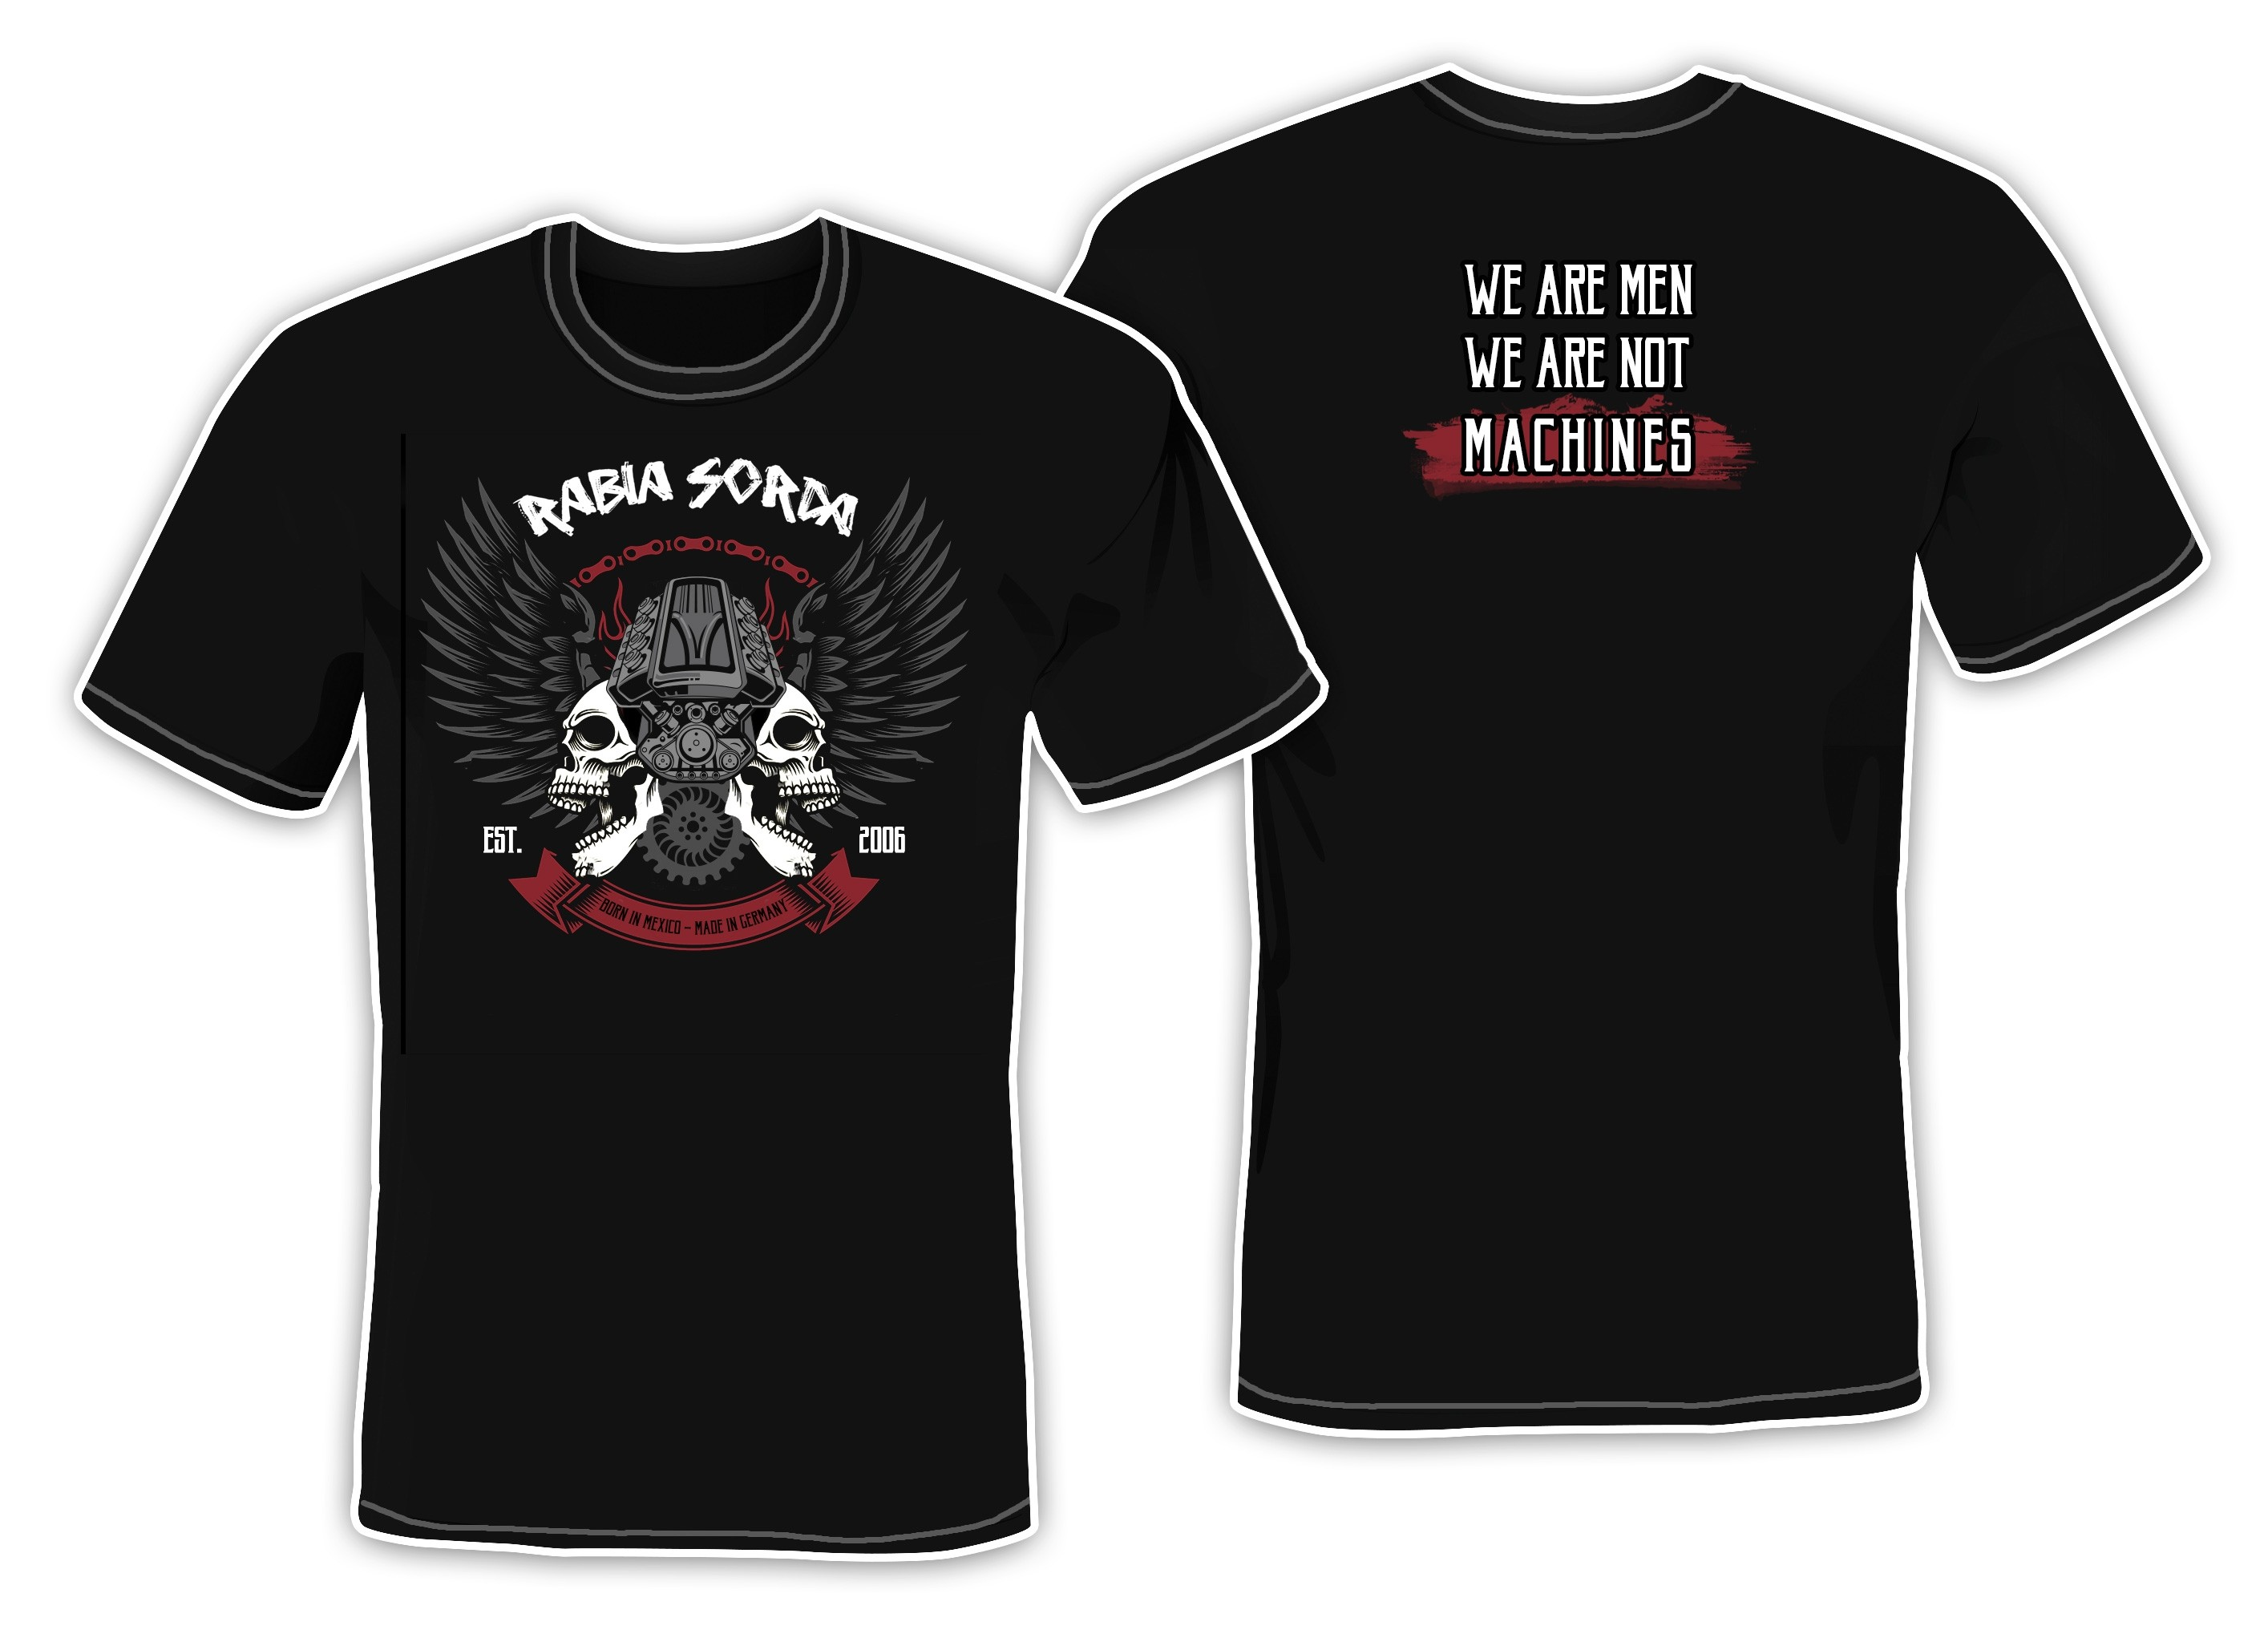 Rabia Sorda - We Are Men We Are Not Machines - T-Shirt